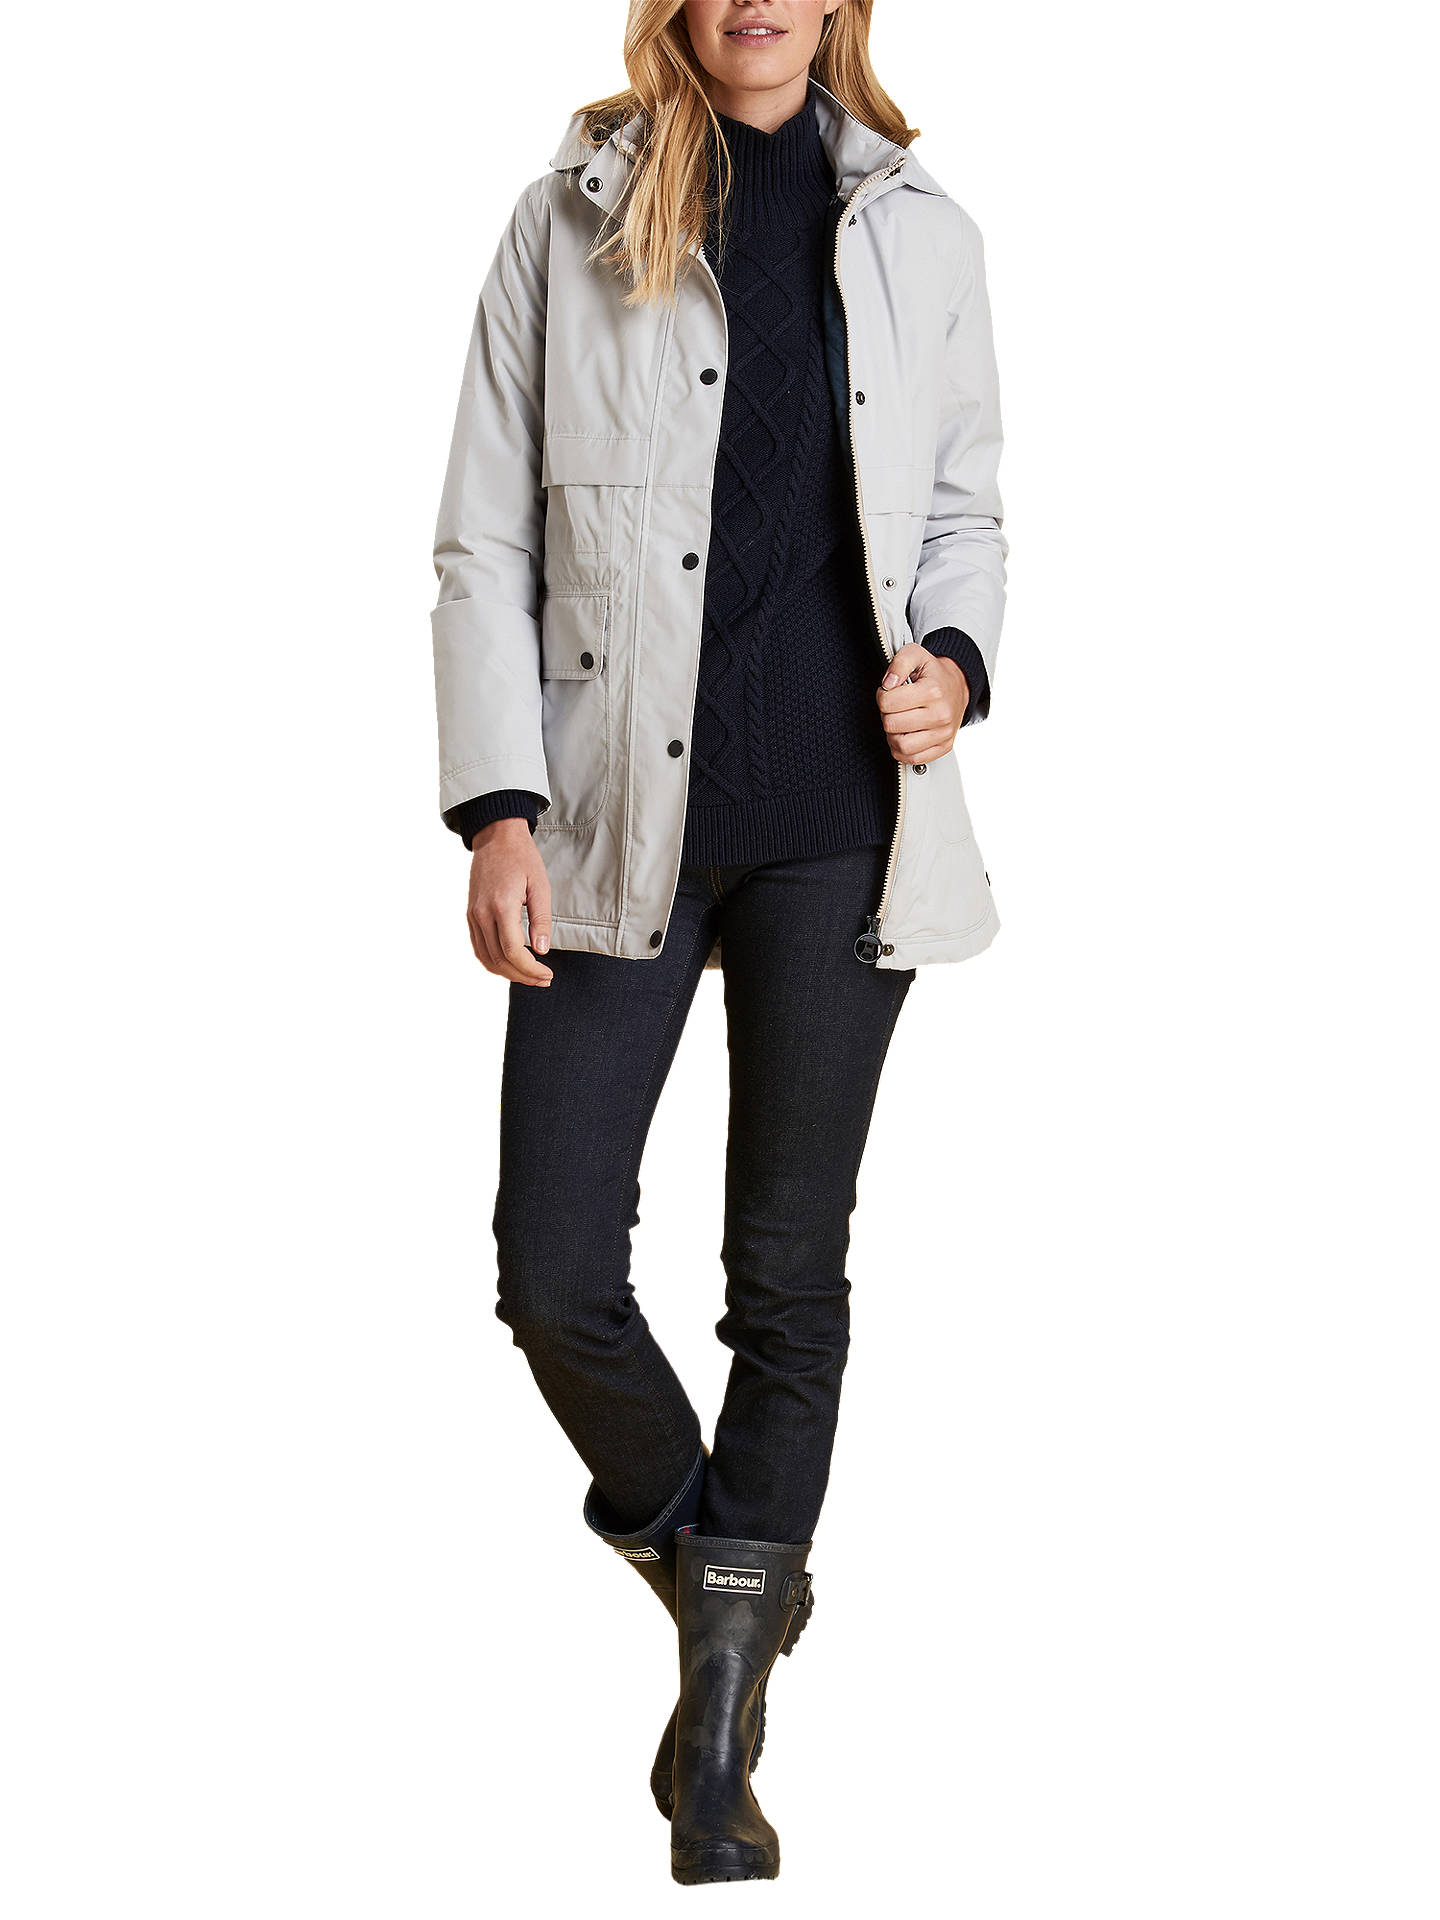 BuyBarbour Altair Waterproof Hooded Jacket, Ice White, 8 Online at johnlewis.com